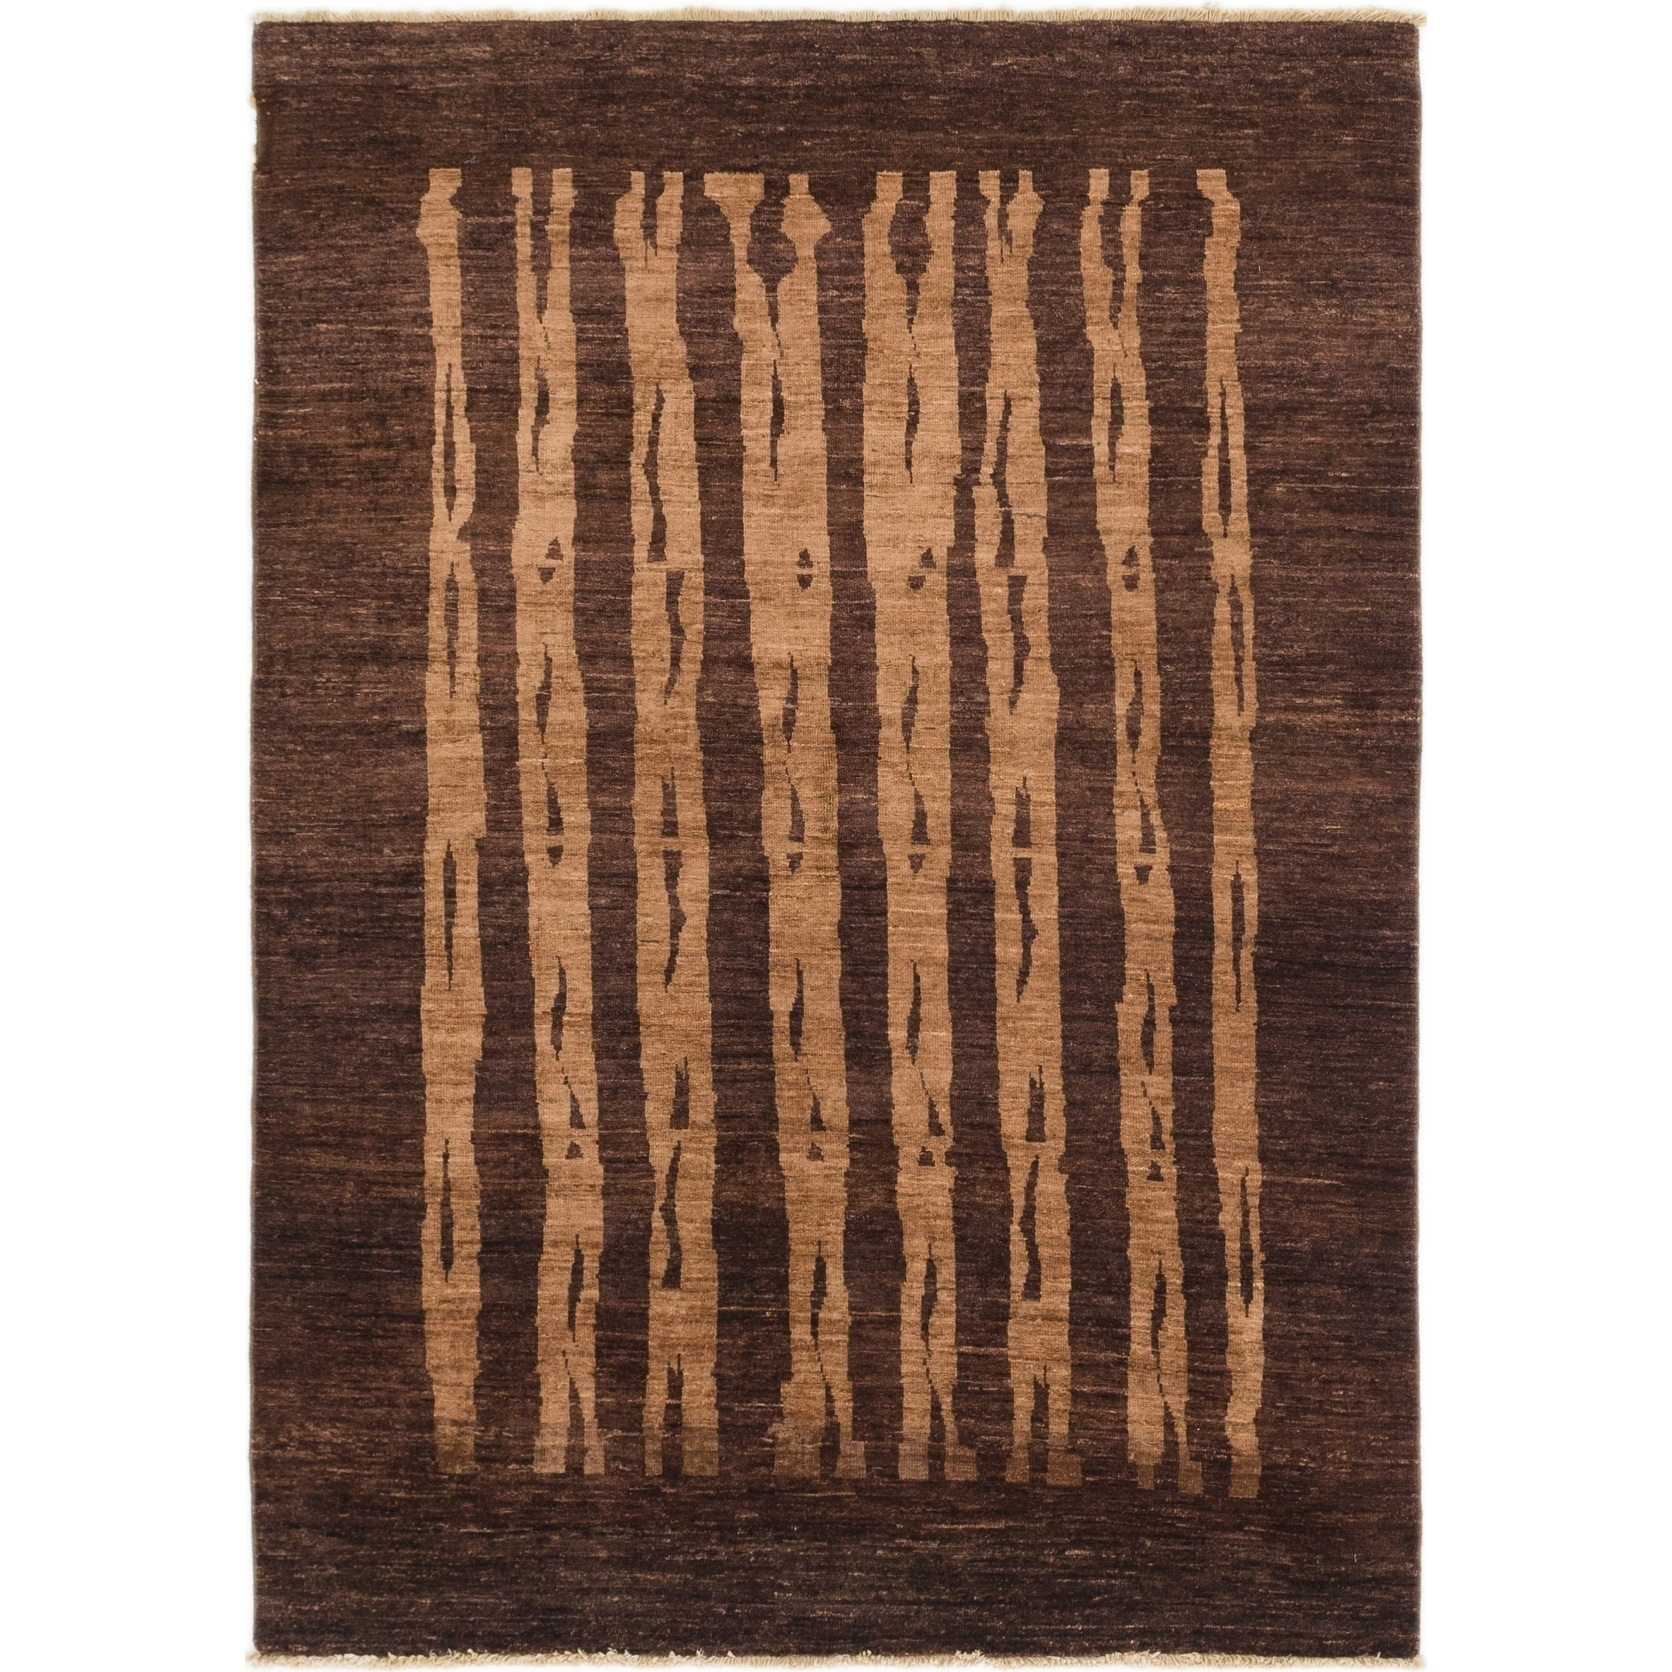 Hand Knotted Kashkuli Gabbeh Wool Area Rug - 4 10 x 6 10 (Plum Red - 4 10 x 6 10)